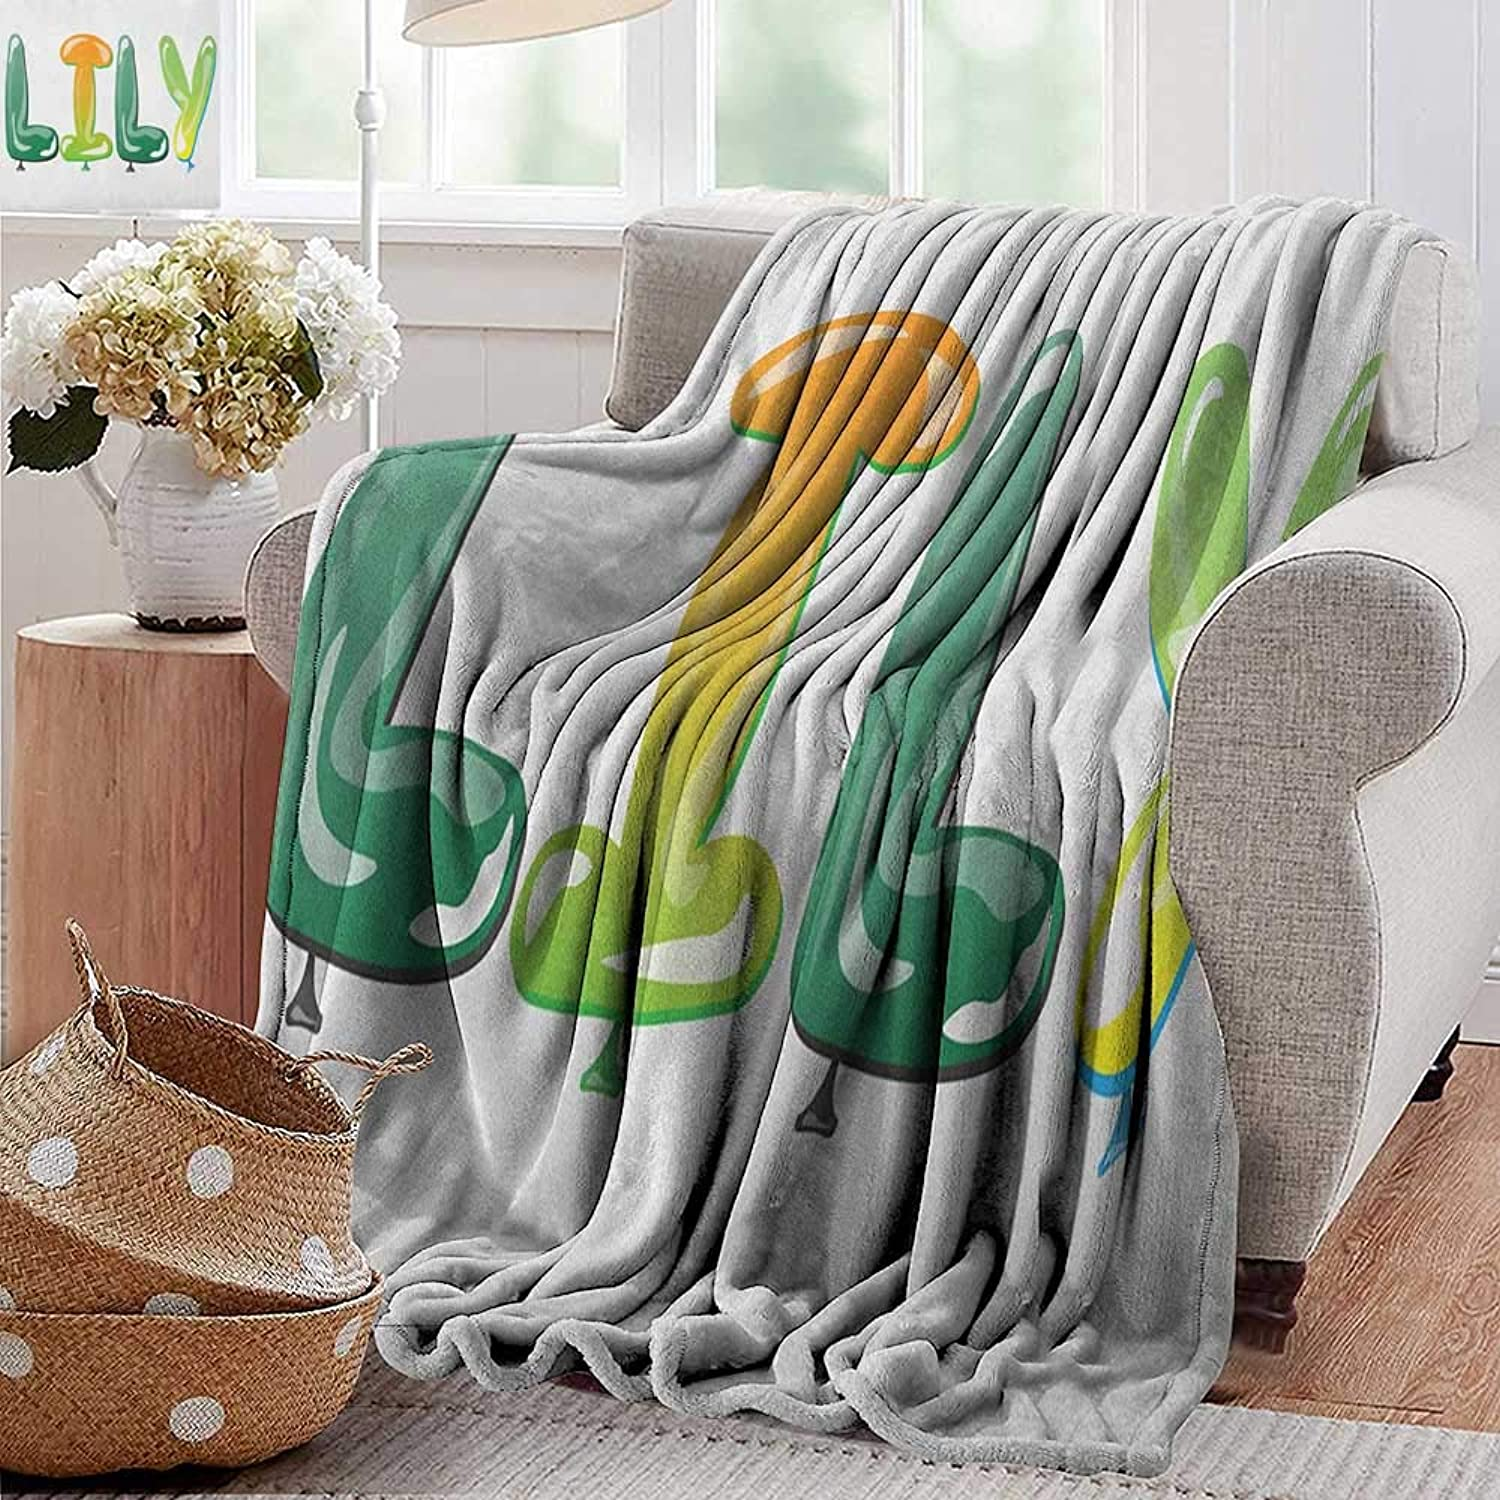 XavieraDoherty Travel Throw Blanket,Lily,colorful Popular Common English Girl Name Design with Balloons Party Festive Occasion, Multicolor,300GSM, Super Soft and Warm, Durable 50 x70